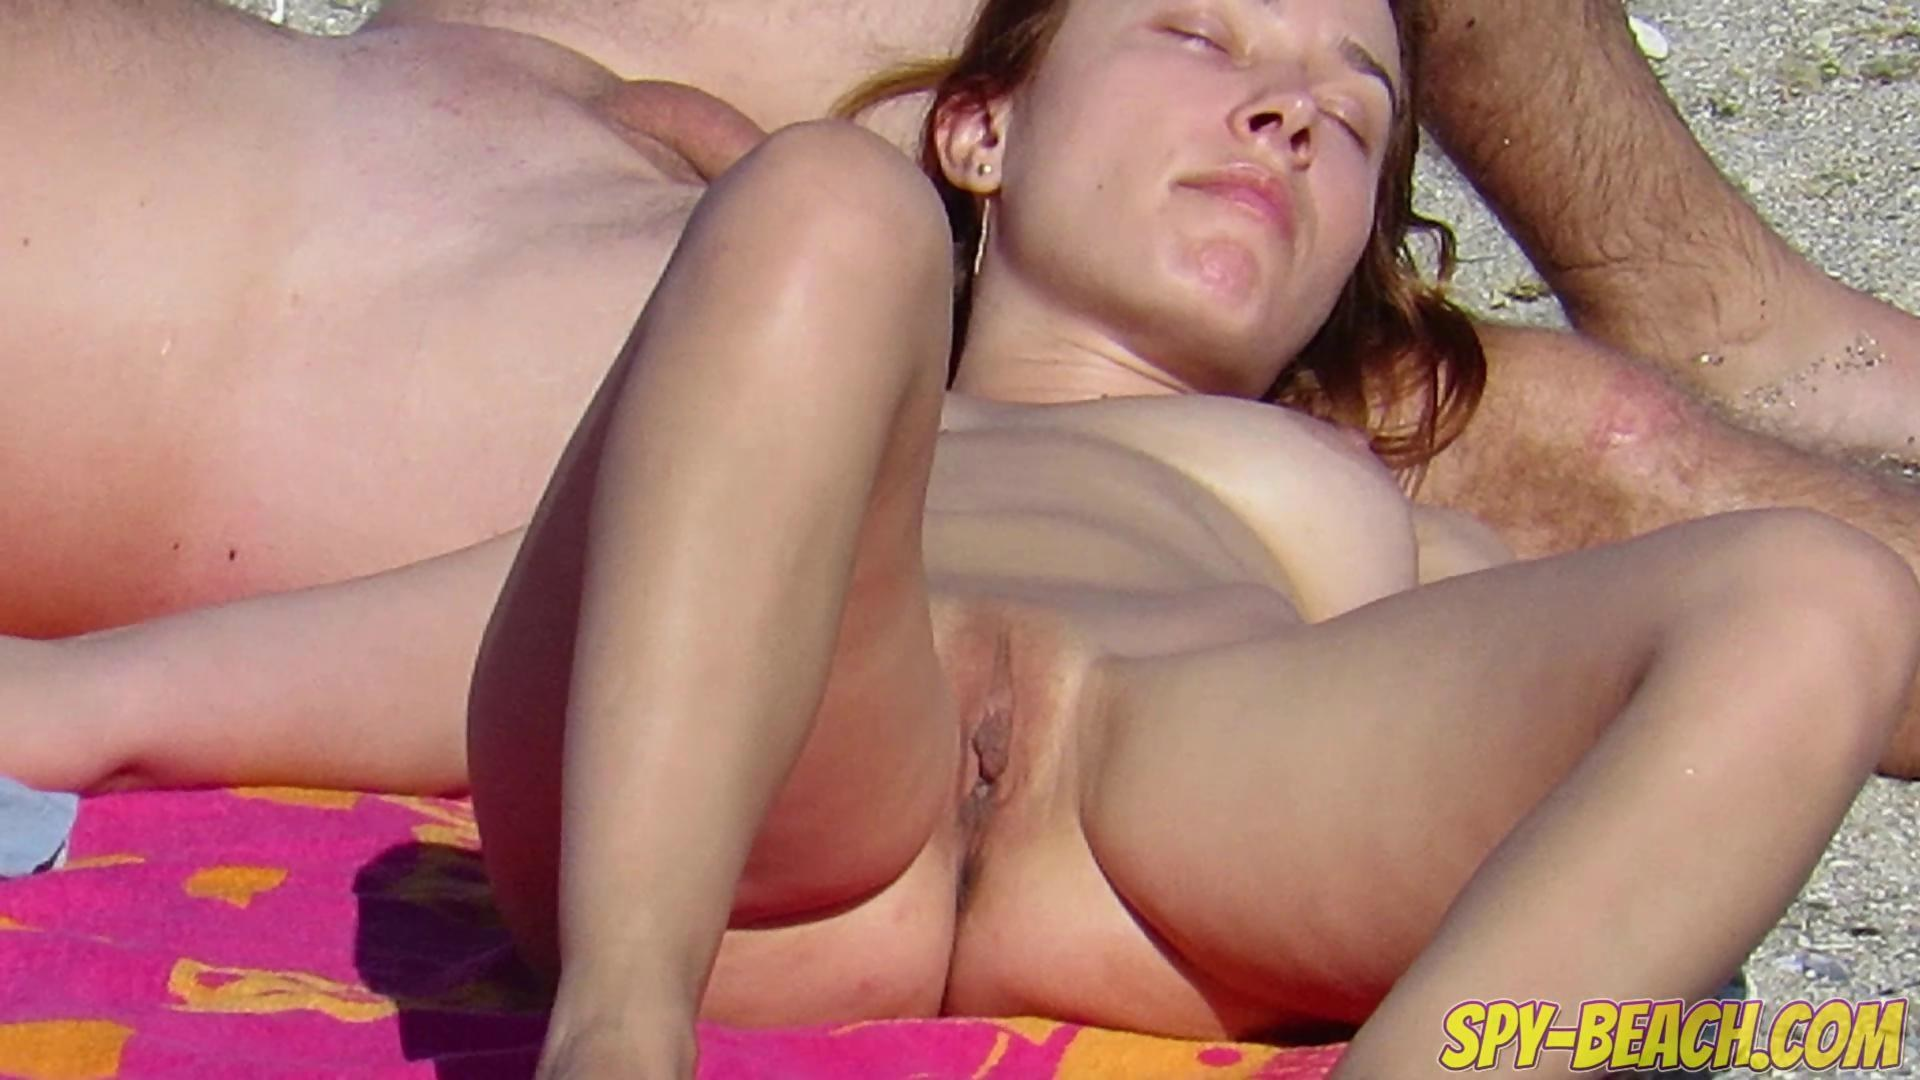 hot nude amateur beach voyeur close up pussy on gotporn (5914993)